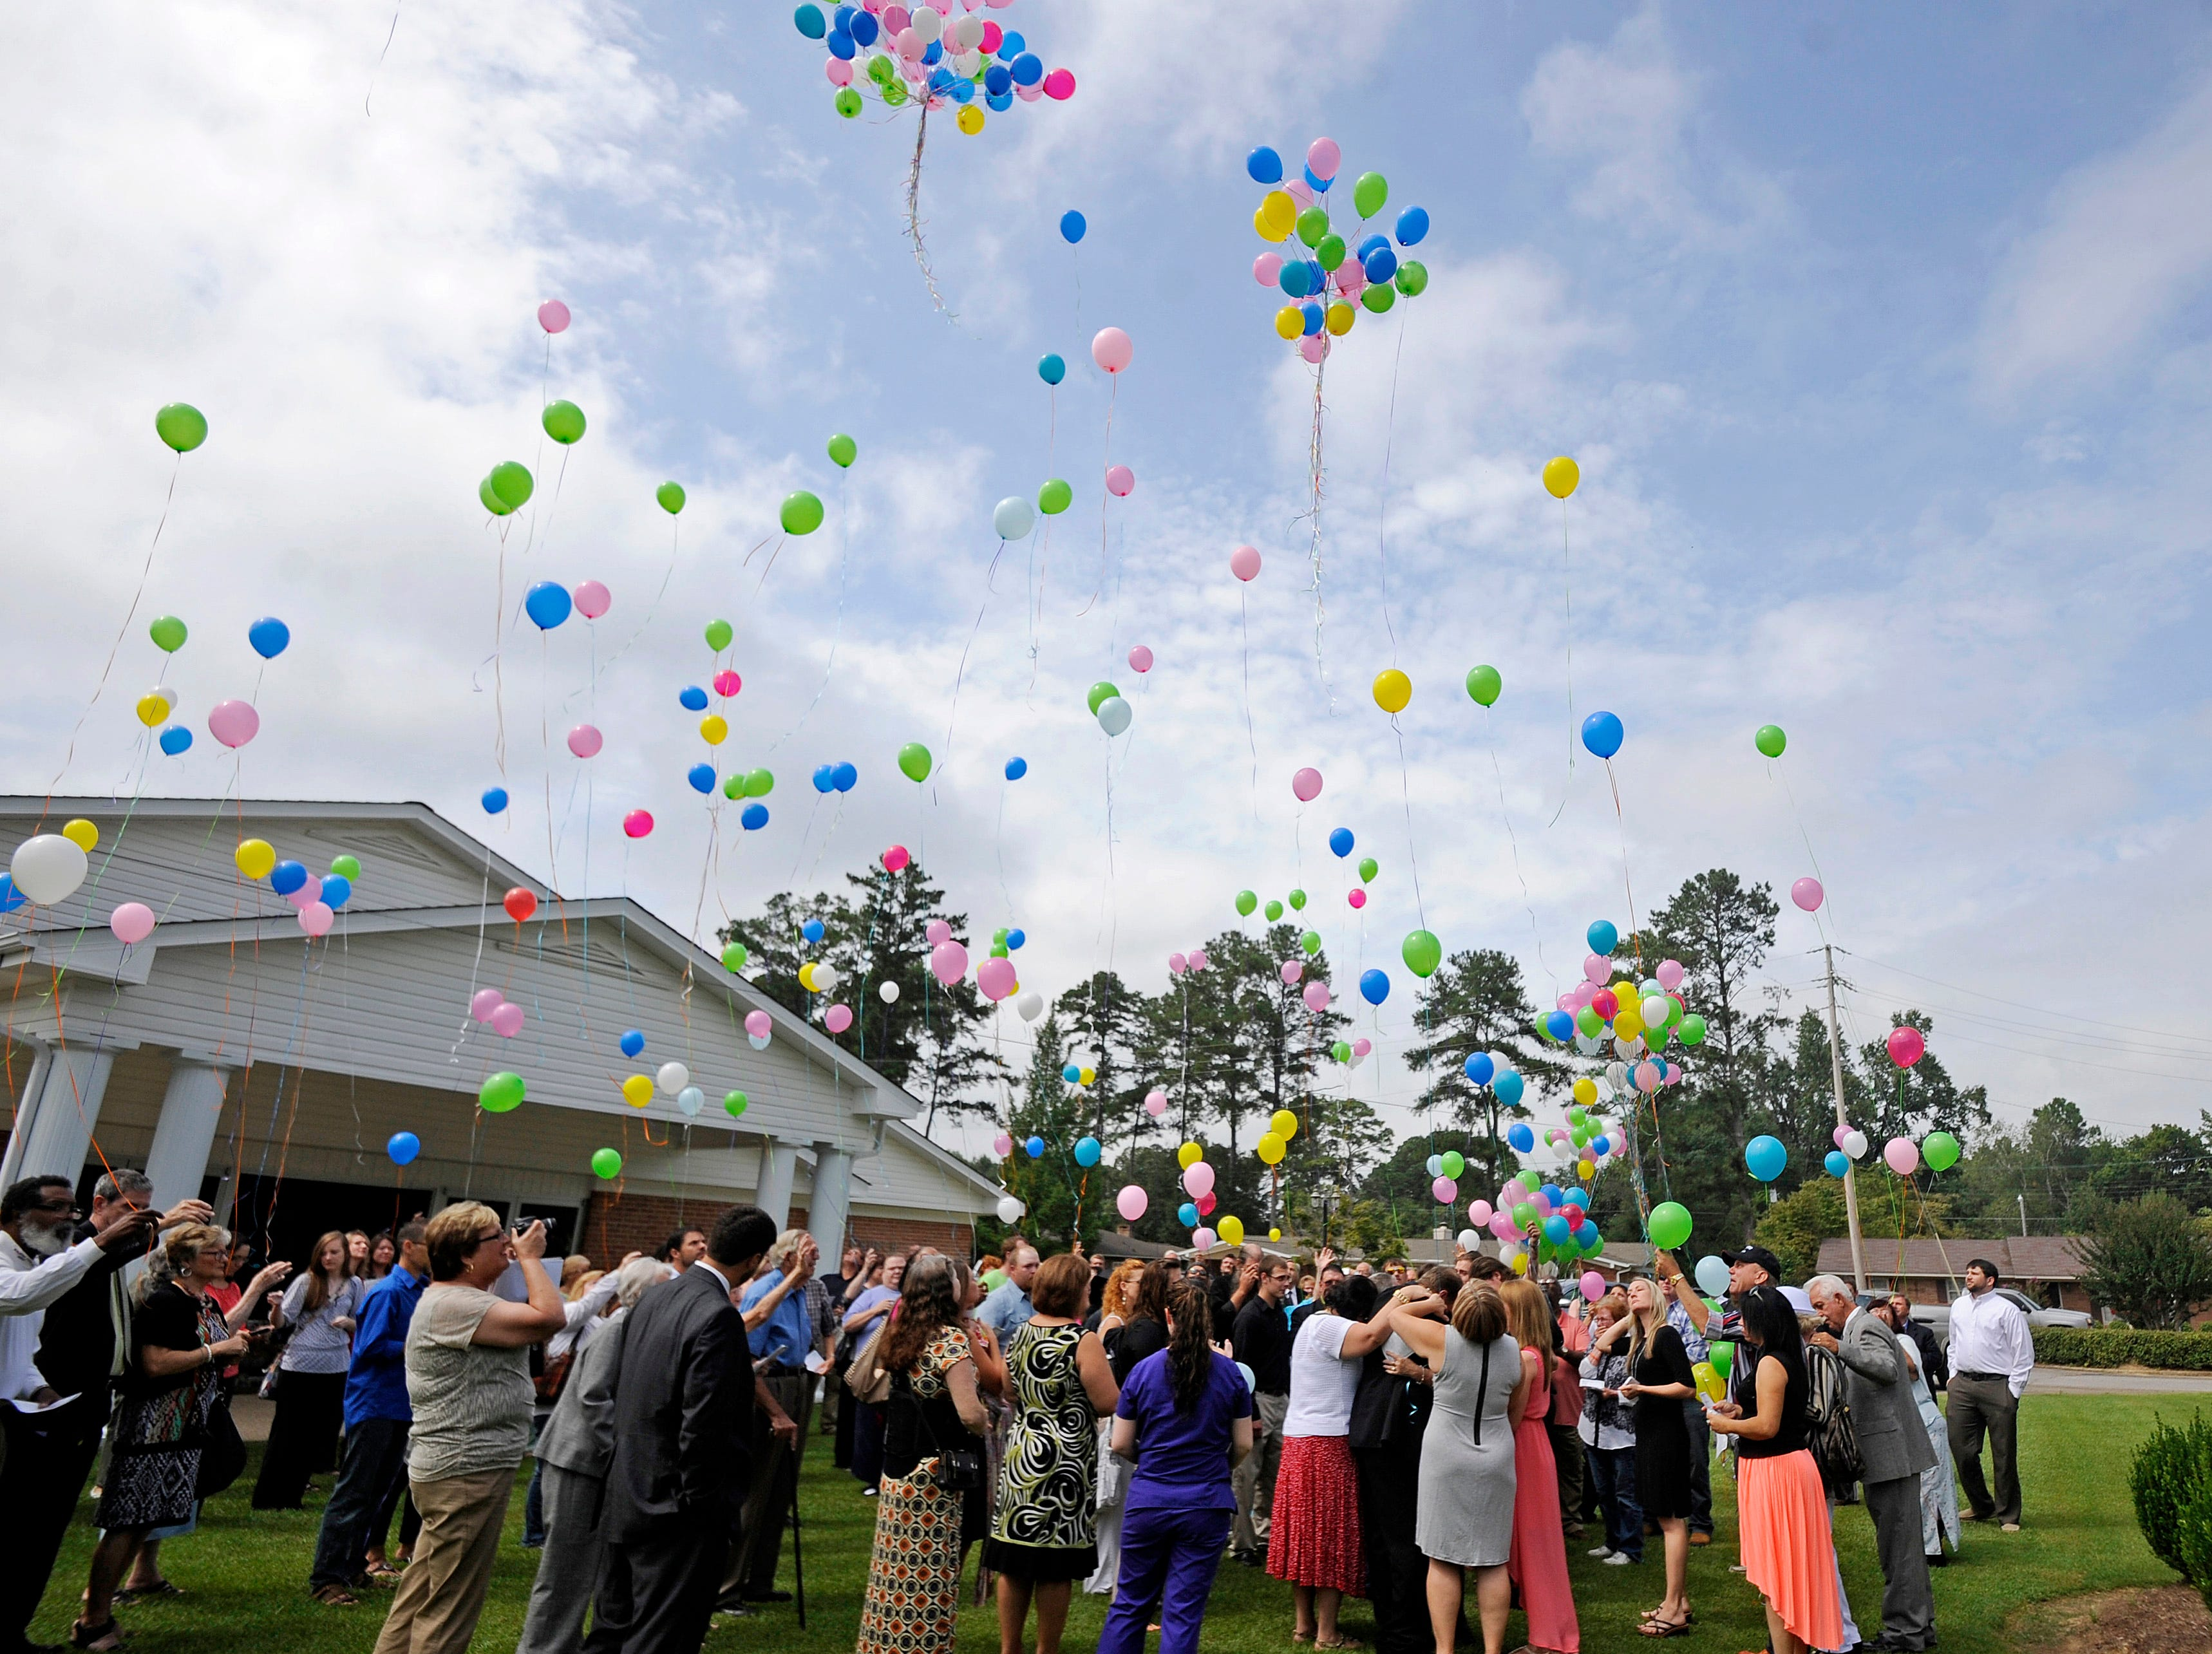 Mourners release balloons at the end of a memorial service in Amory, Miss., Friday, Sept. 12, 2014.  Police say Timothy Ray Jones Jr., 32, killed his three boys and two girls, wrapped their bodies in separate trash bags and drove around for days across several states with their decomposing bodies before dumping them on a rural hilltop in Alabama. The children were remembered at the Amory Church of Christ. A program showed a photo of each child smiling and offered a description of what they liked to do.  (AP Photo/Thomas Graning)